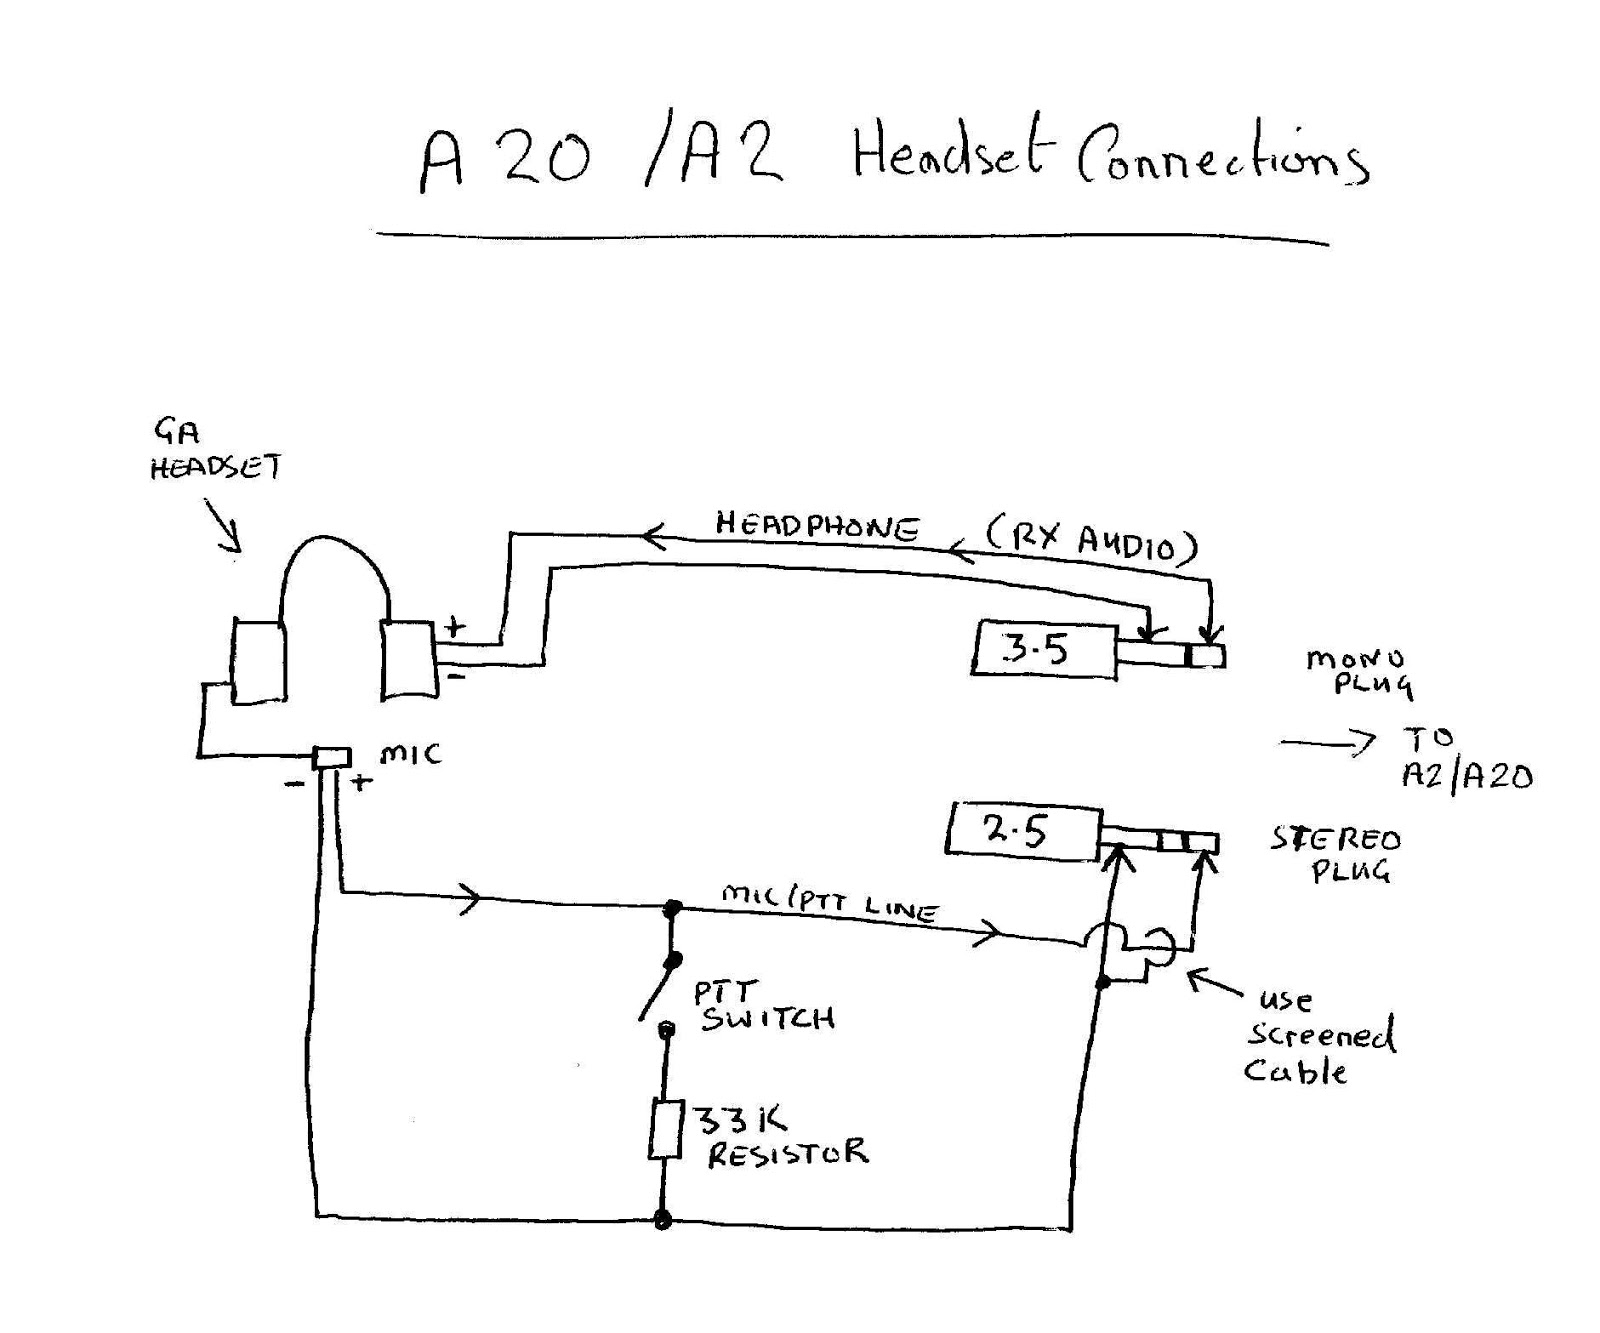 K40 Mic Wiring Diagram Auto Electrical 3 Pin Power Wire Schematic Midland Astatic Diagrams N20 Contemporary Gl1500 Cb